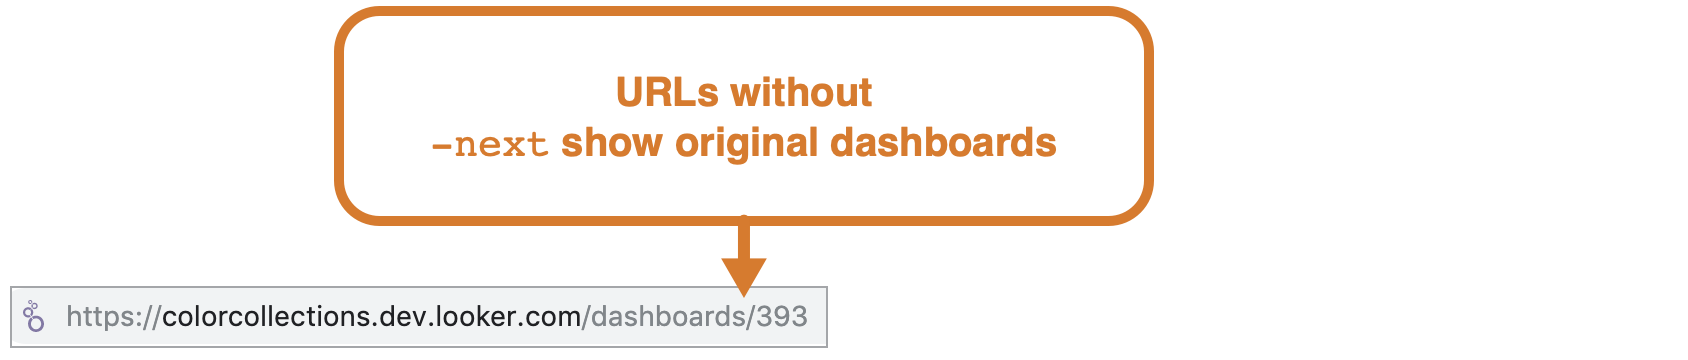 new-dashboards-old-url-624.png